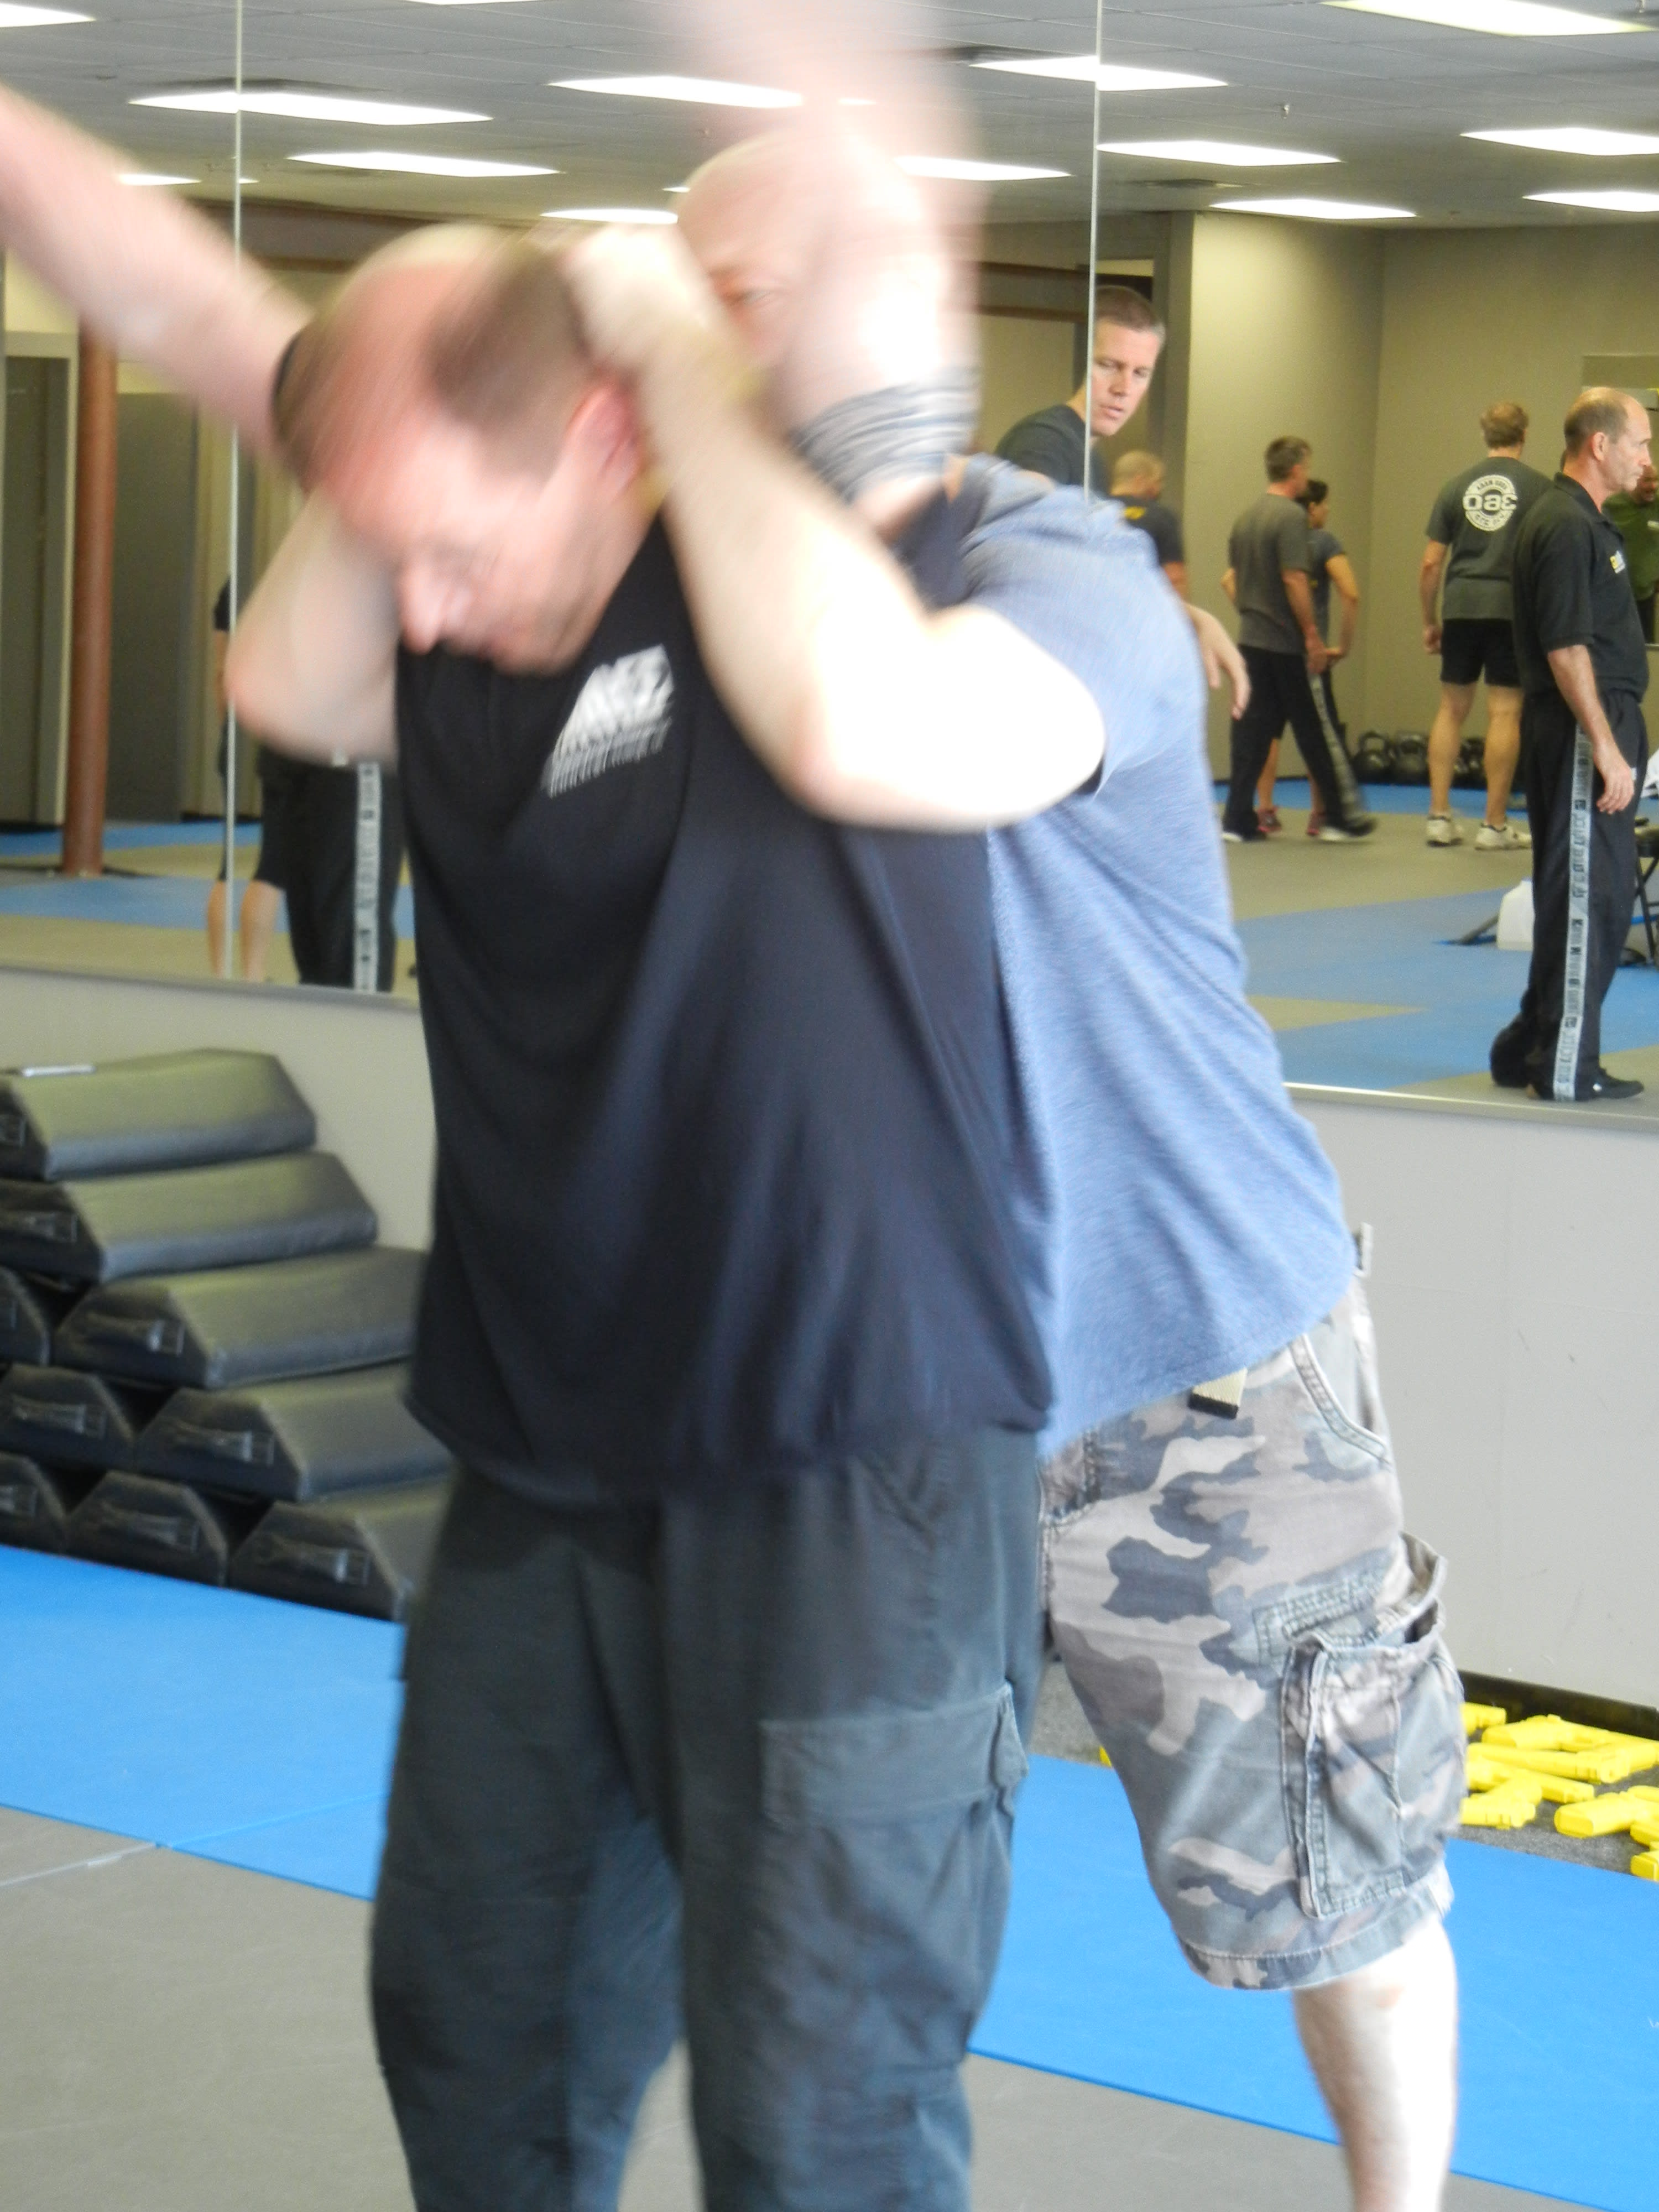 Mike Kawa Graduate 5 in Plano - Crucible Krav Maga